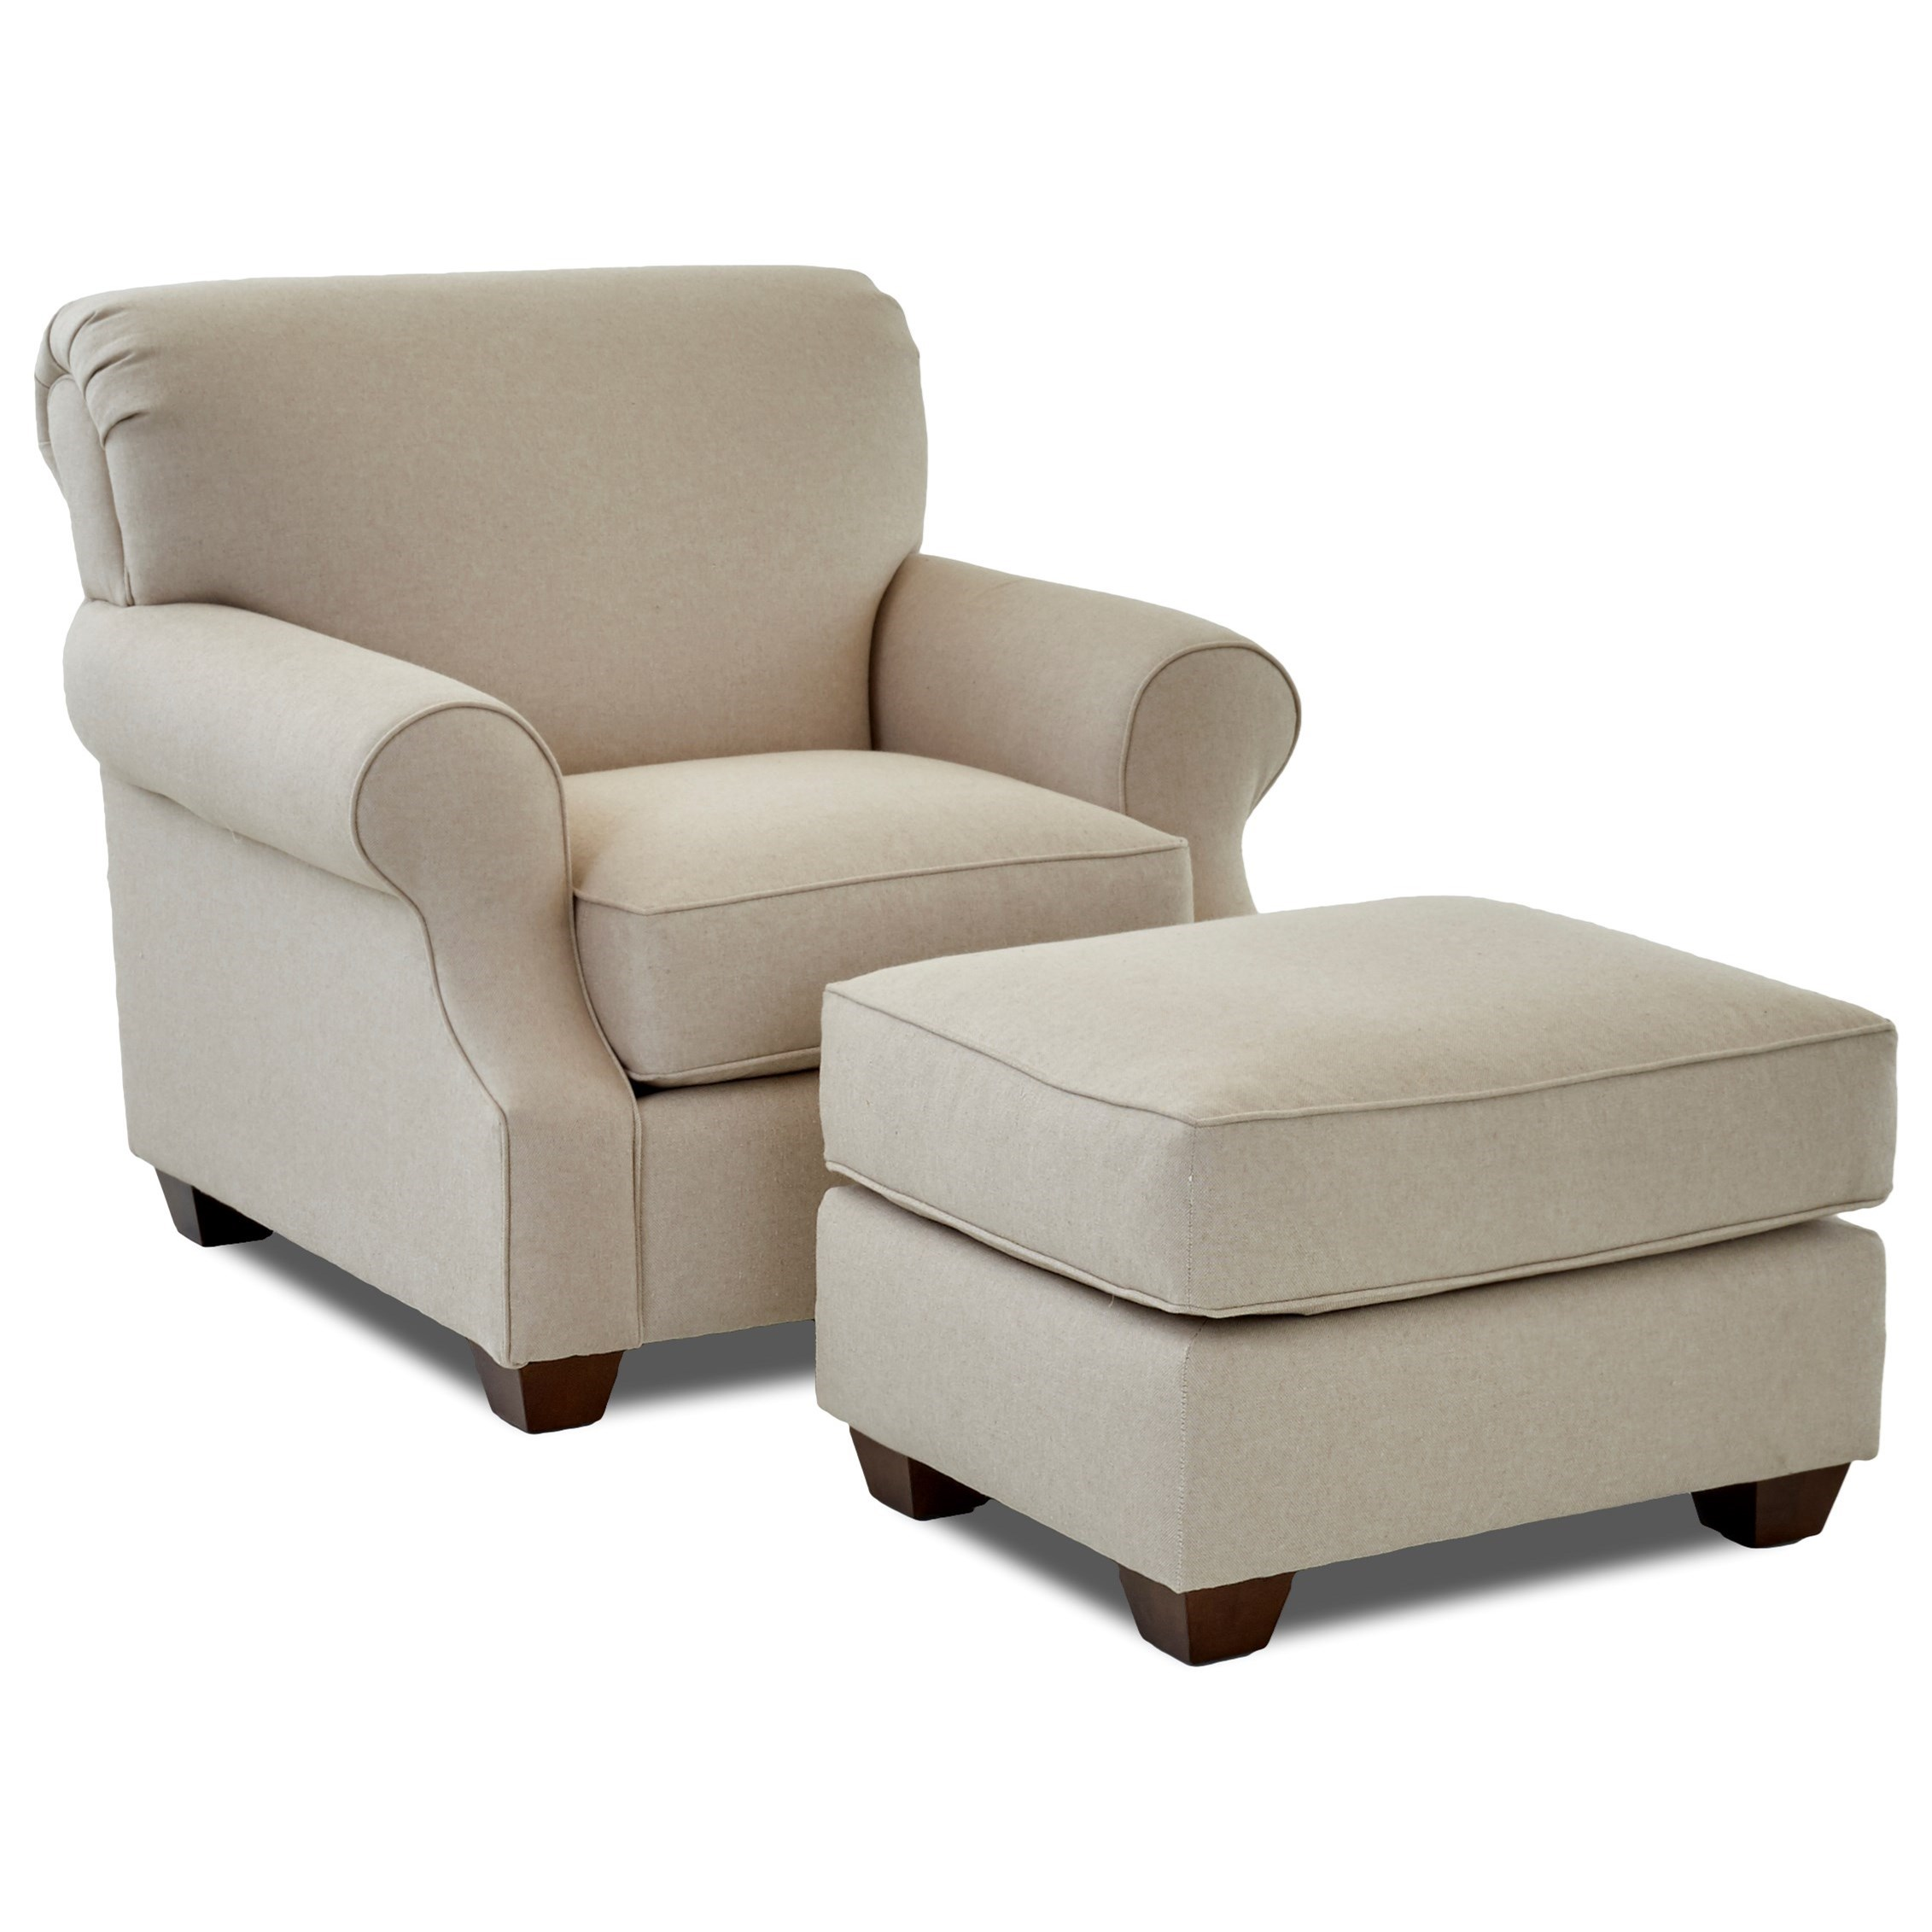 Casual Upholstered Chair and Ottoman